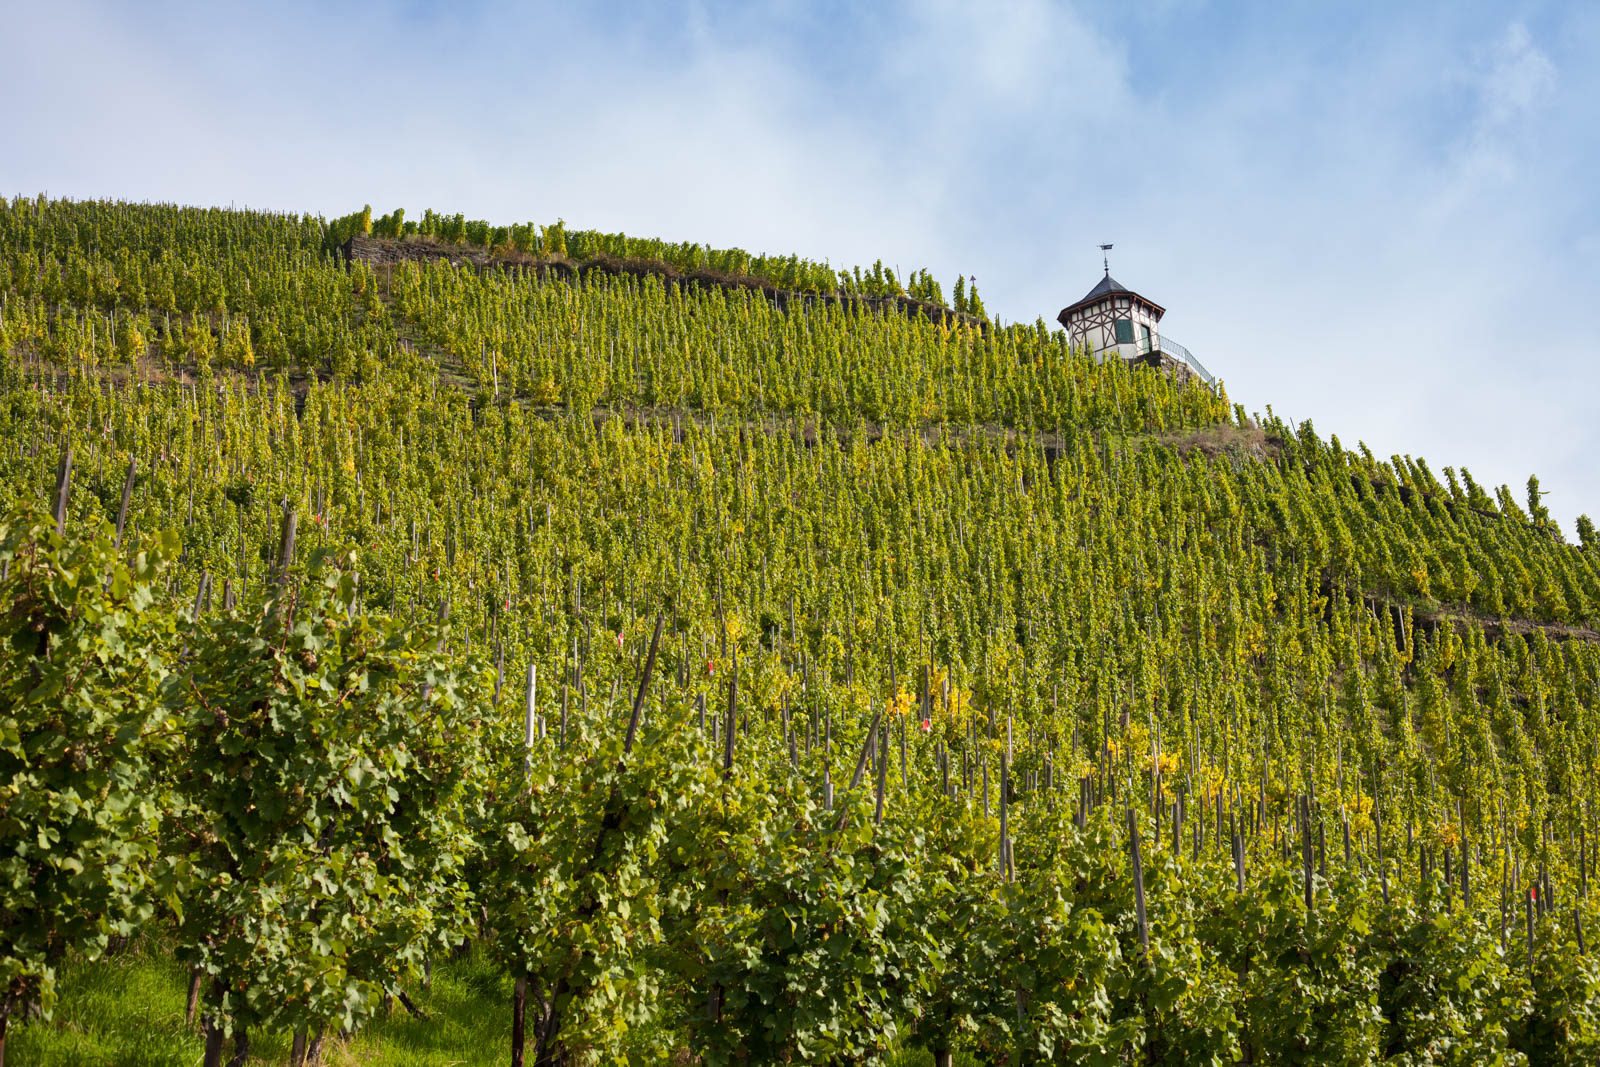 Doctor Vineyard, Bernkastel-Keus, Germany